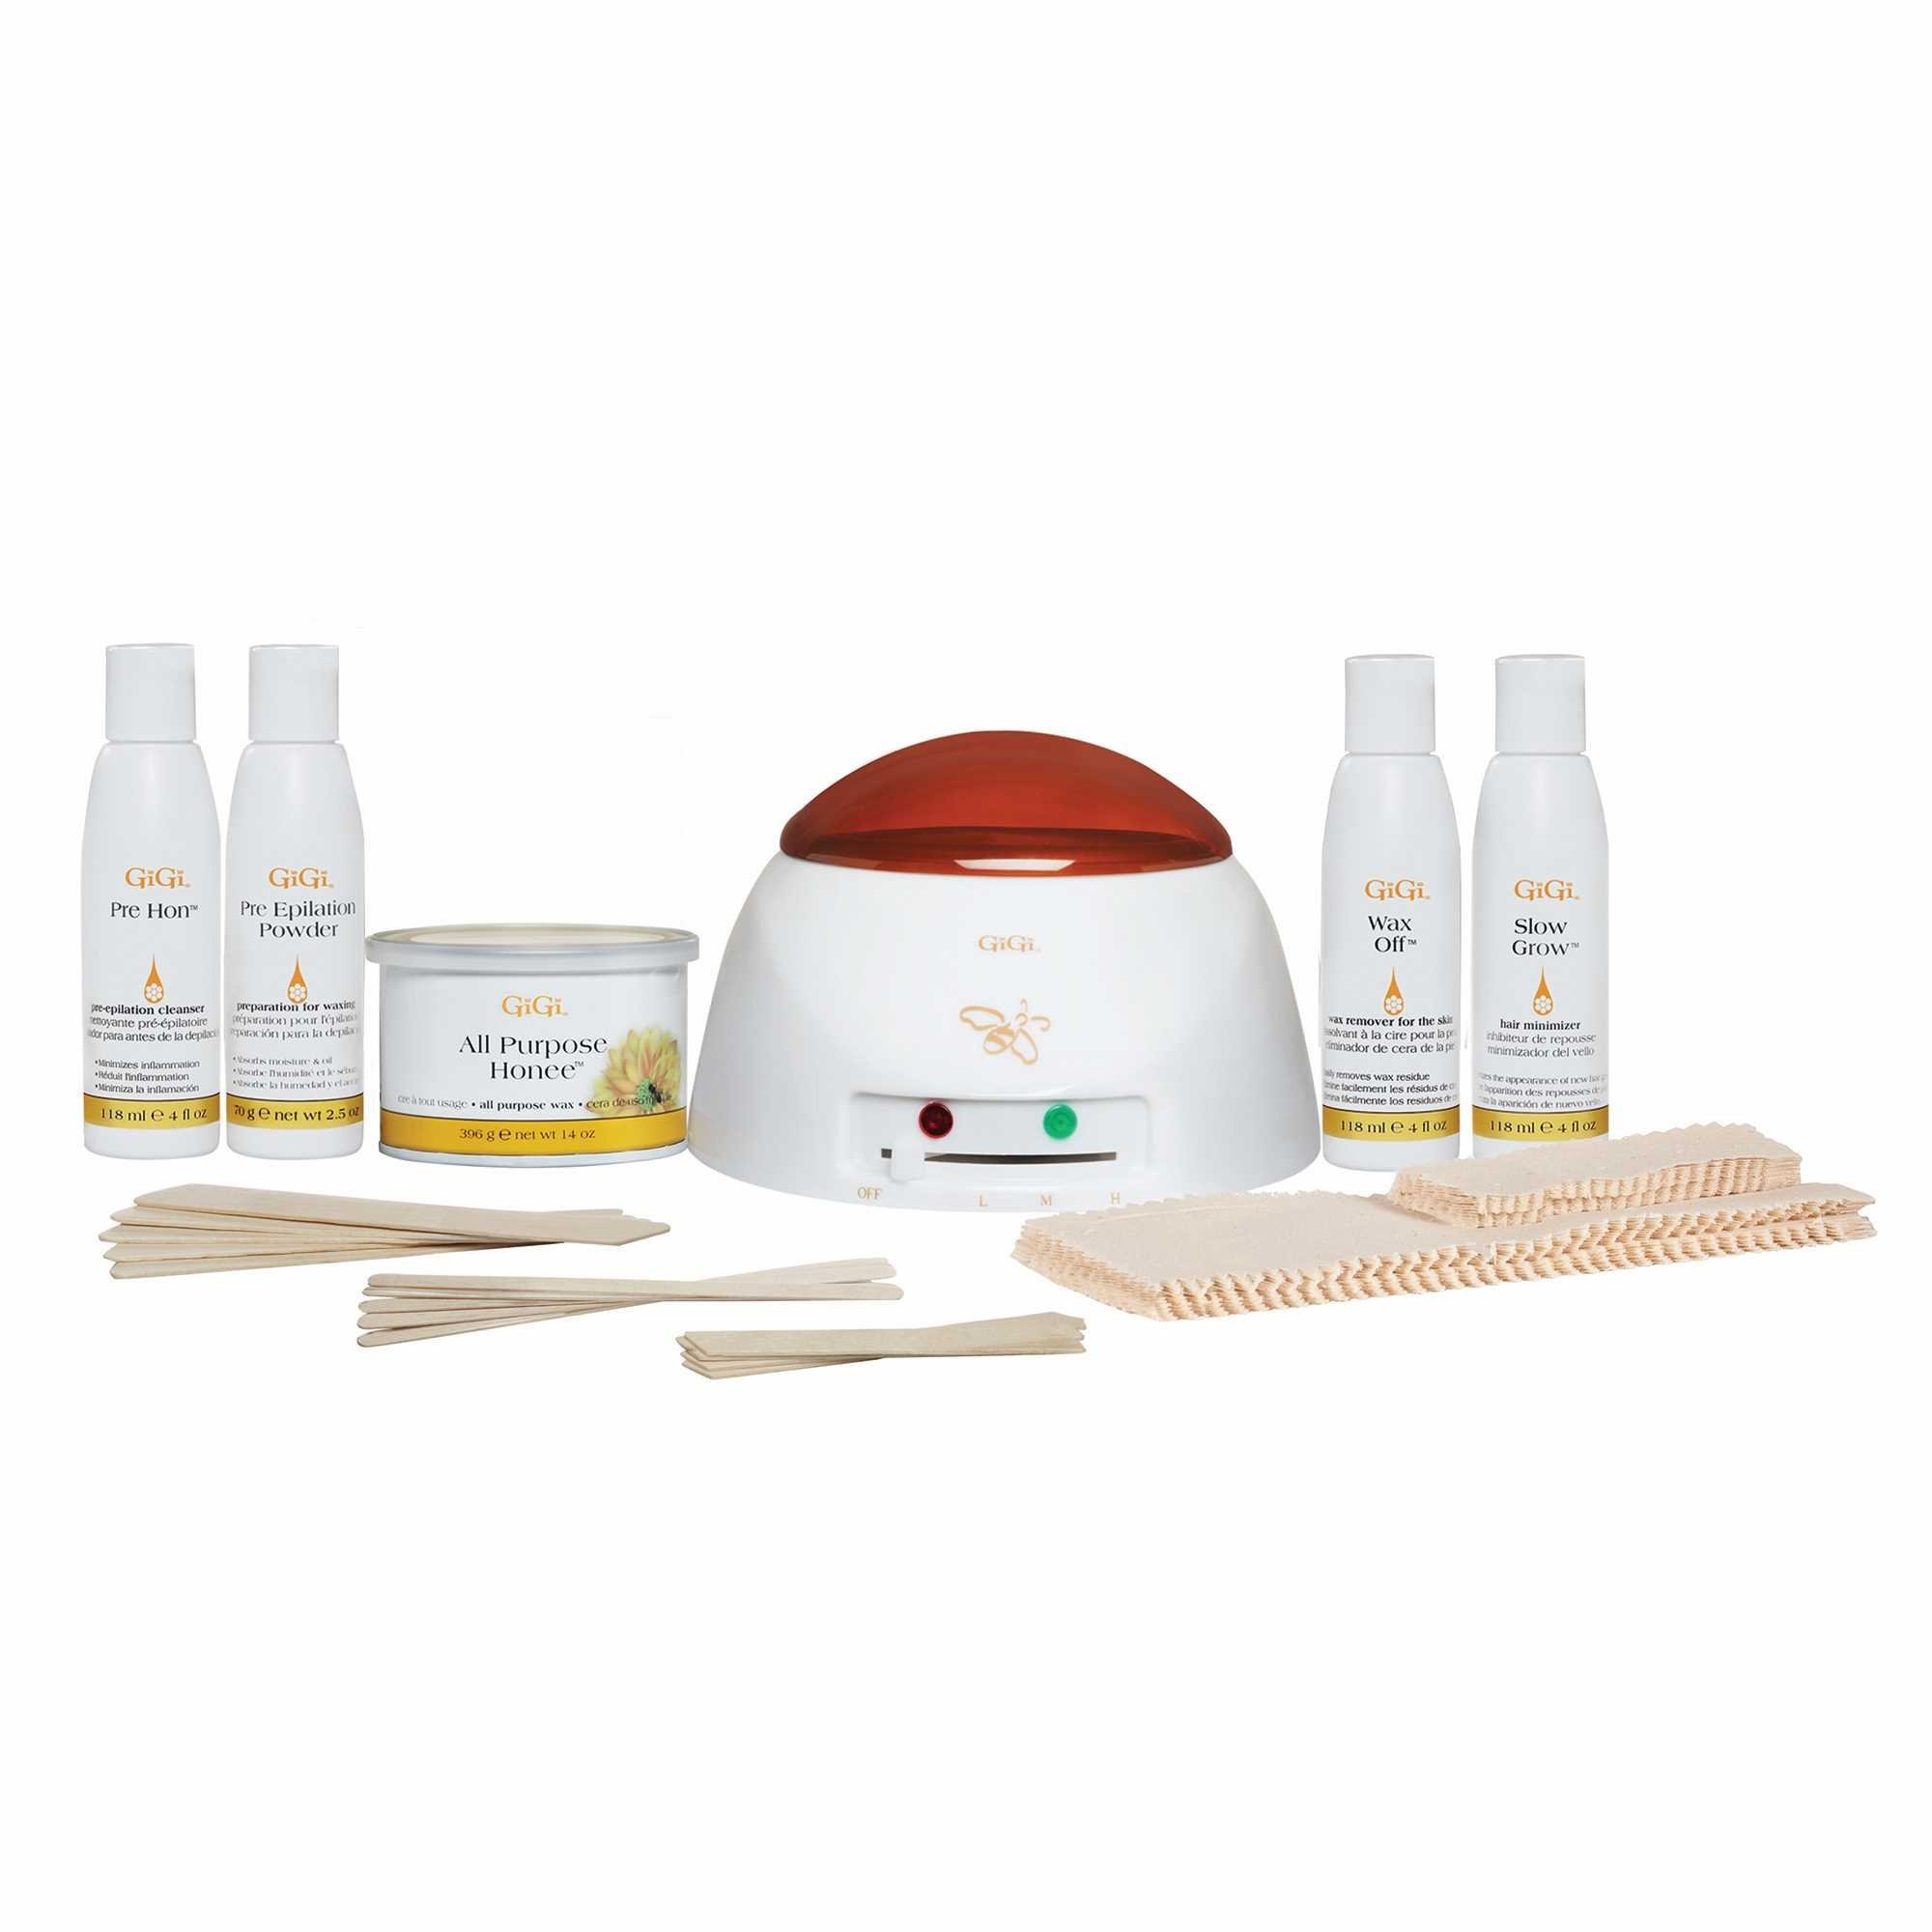 GiGi Professional Grade Waxing Hair Removal Student Starter Kit with Warmer